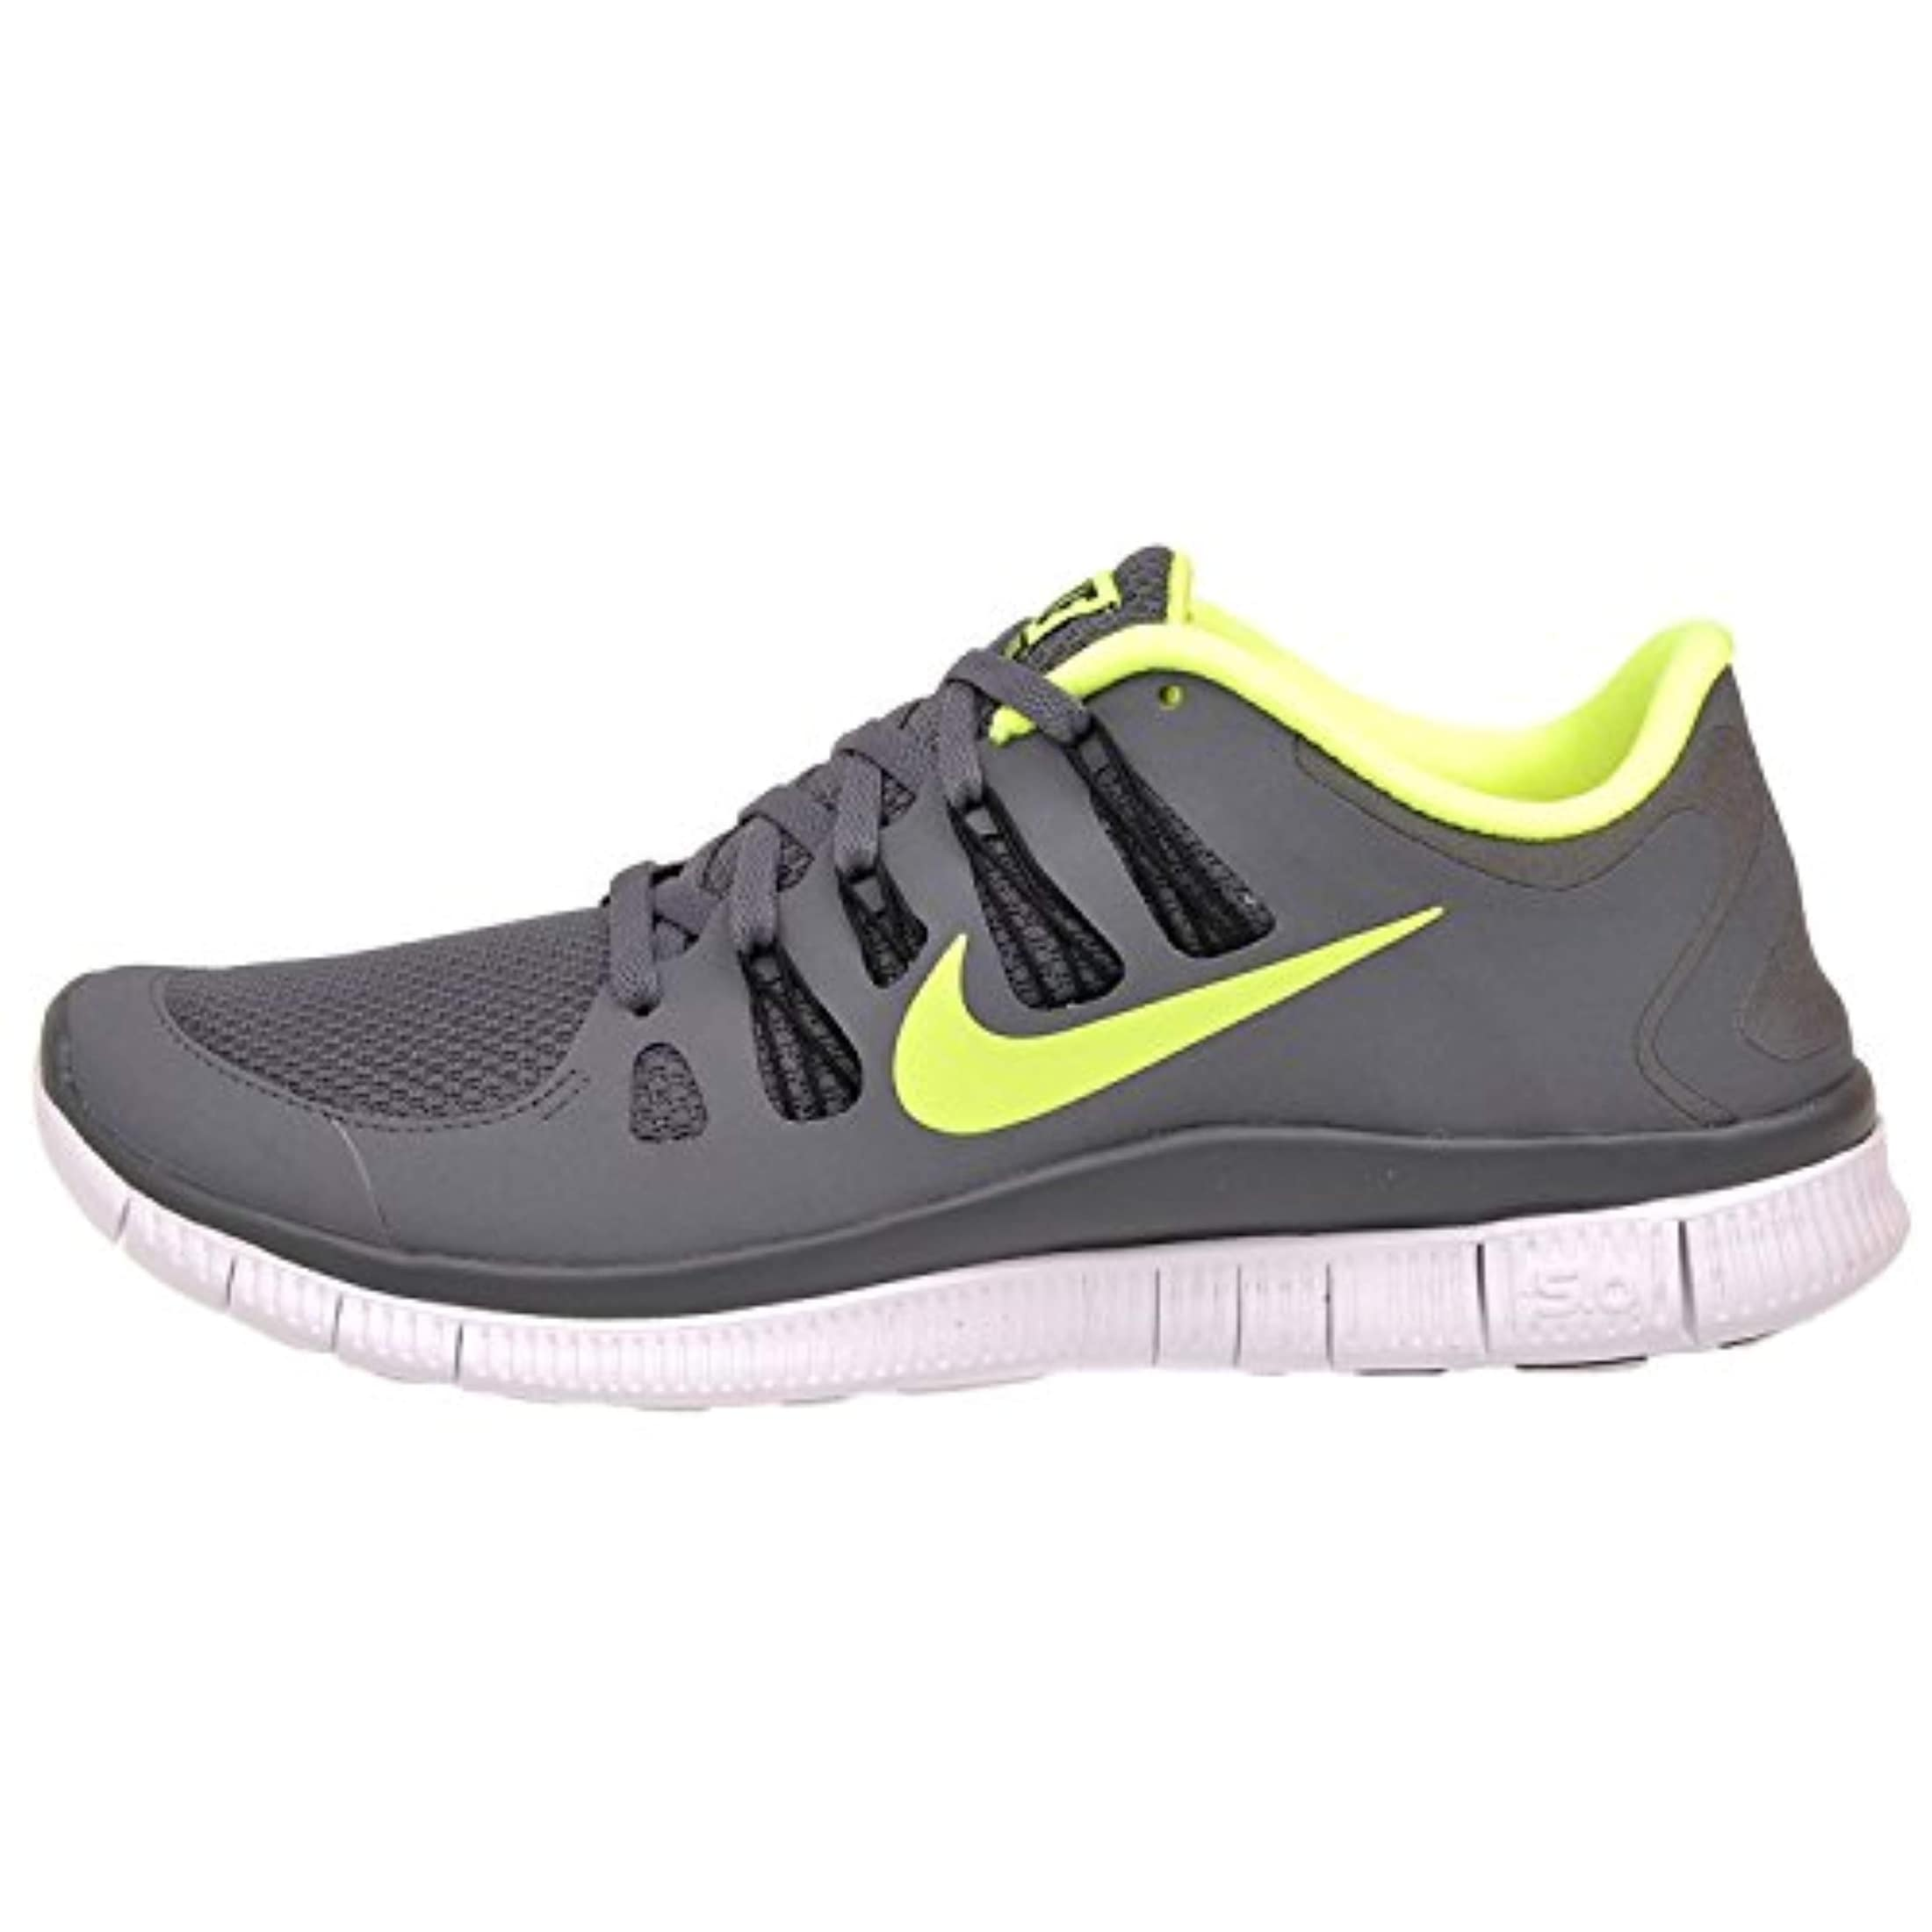 huge discount 62e65 8b0fe Shop Nike Men s Free 5.0 Plus, Dark Grey Volt Black White - Free Shipping  Today - Overstock - 27432935